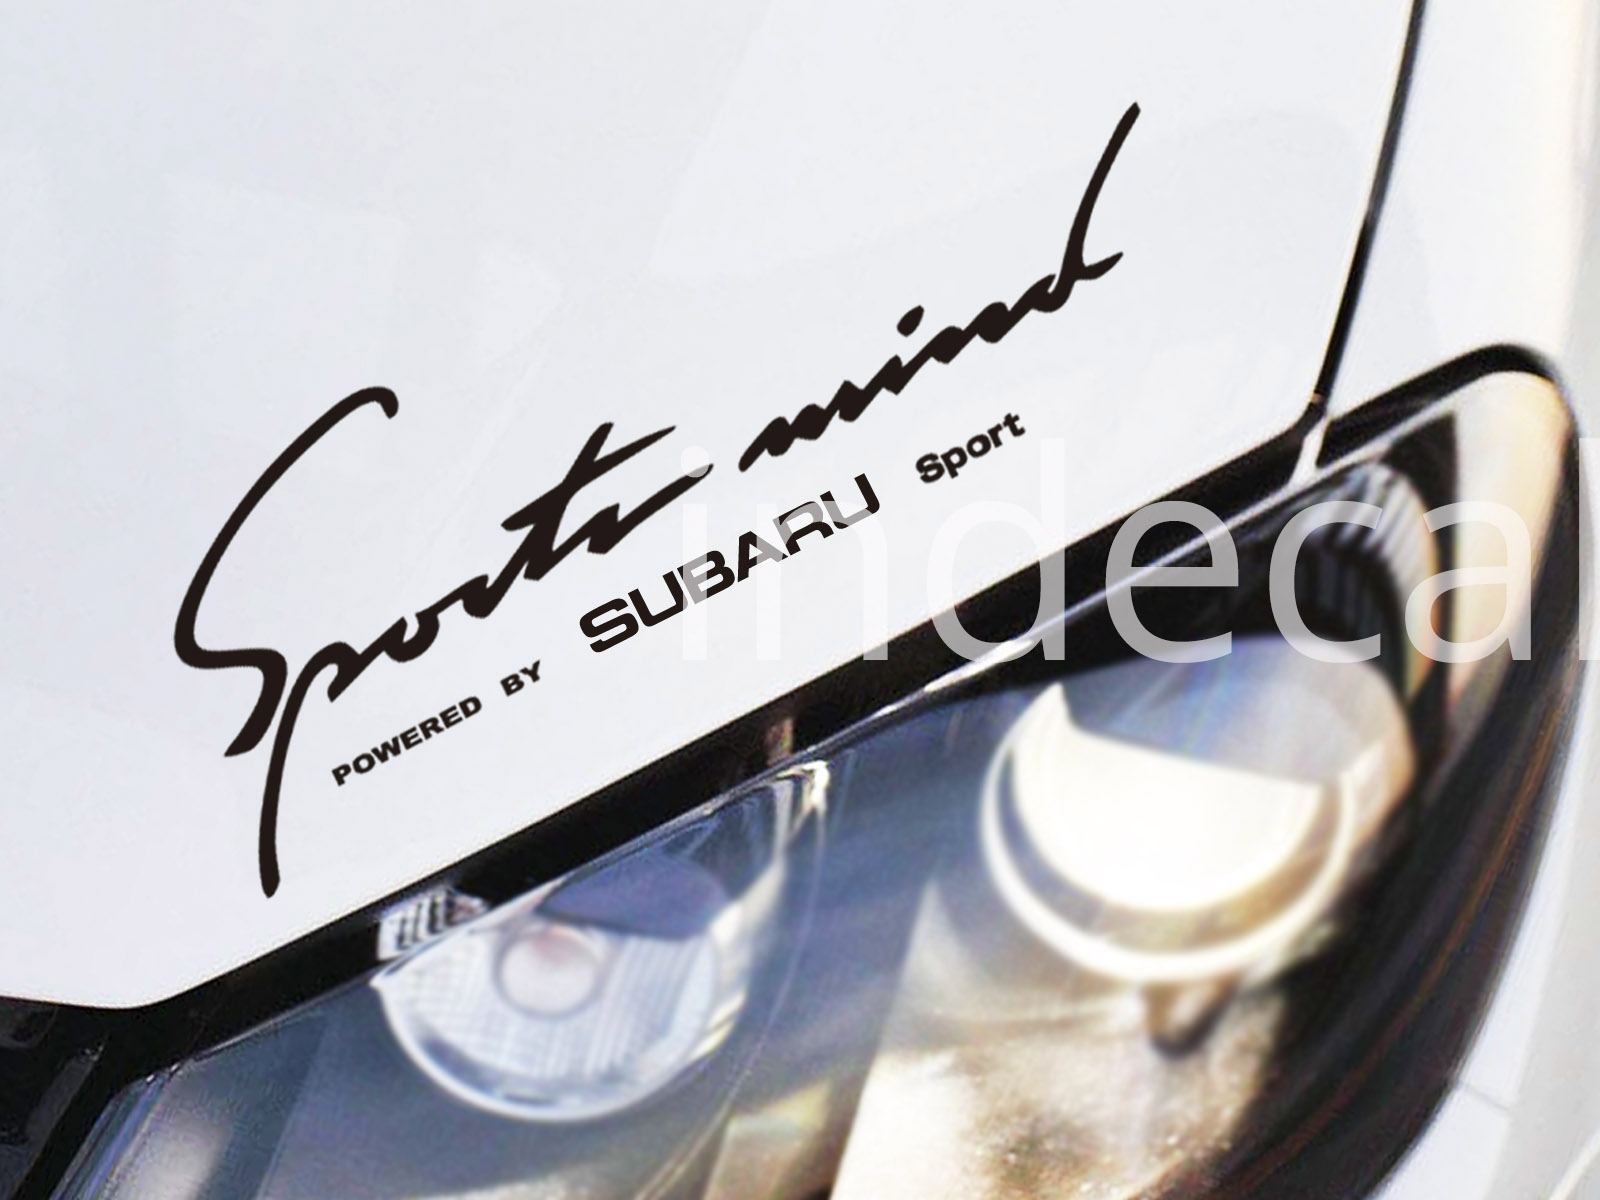 1 x Subaru Sports Mind Sticker - Black